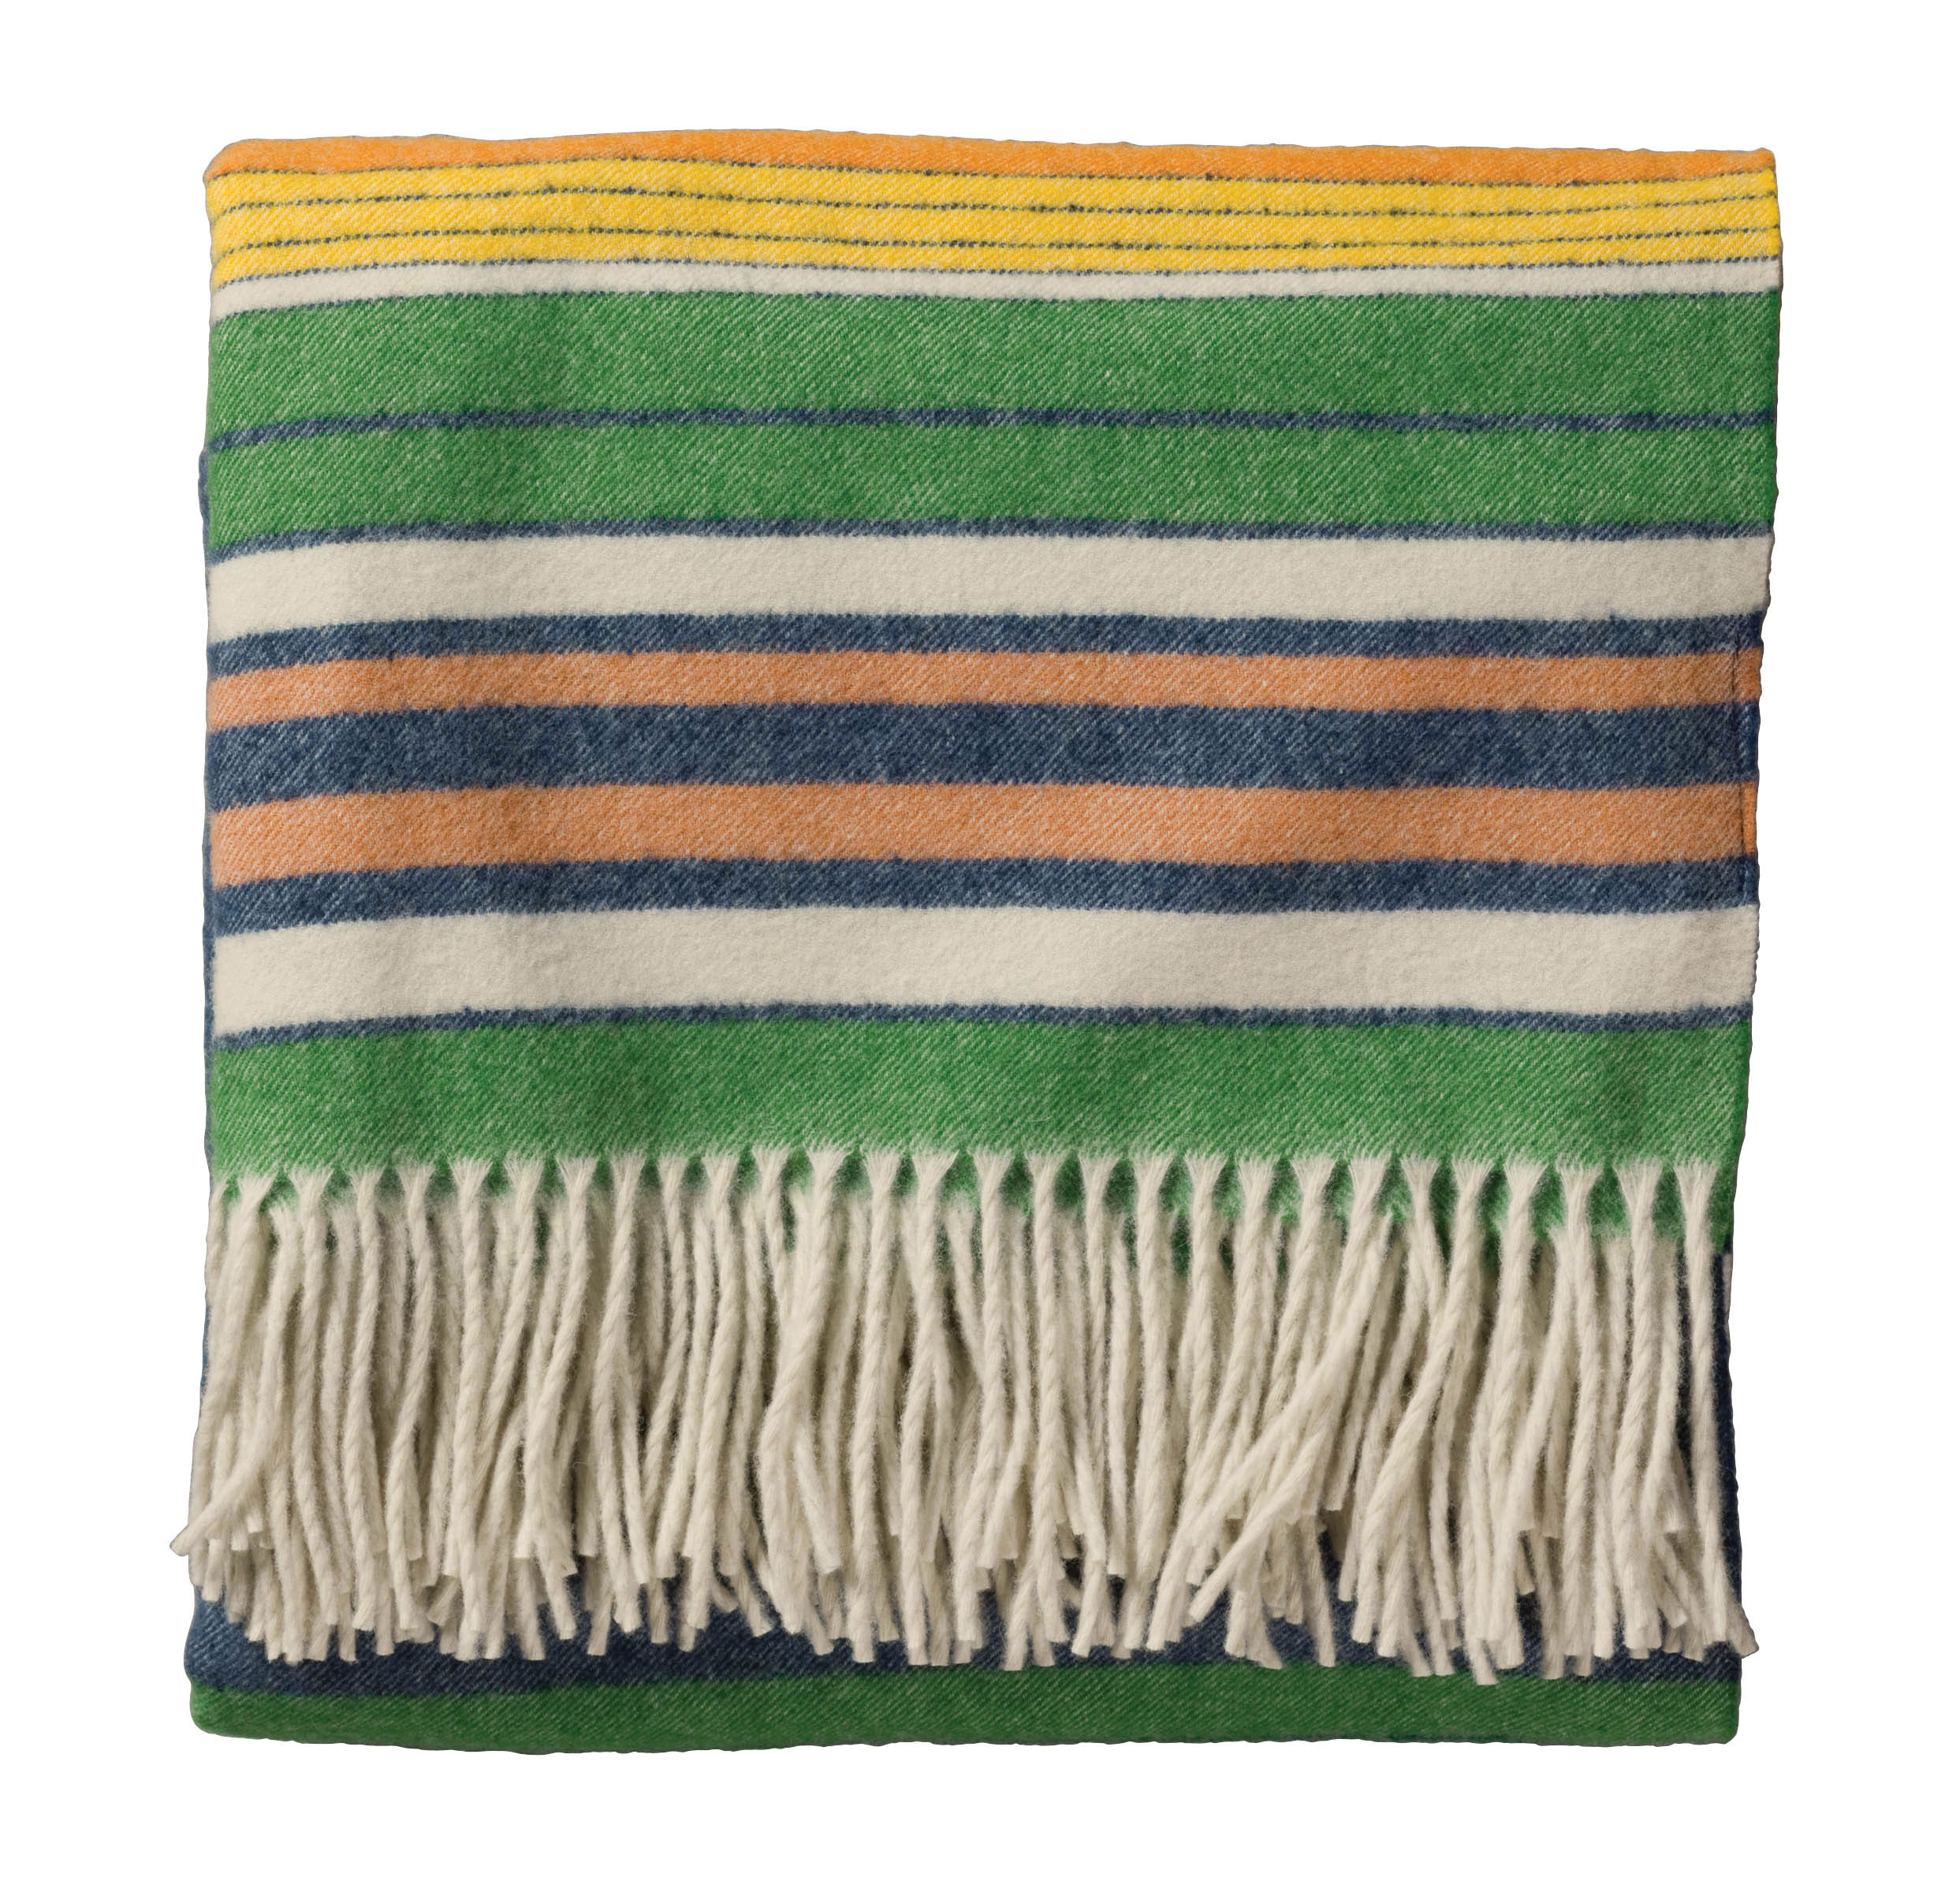 5th Avenue Throw - Blue Orange Stripe